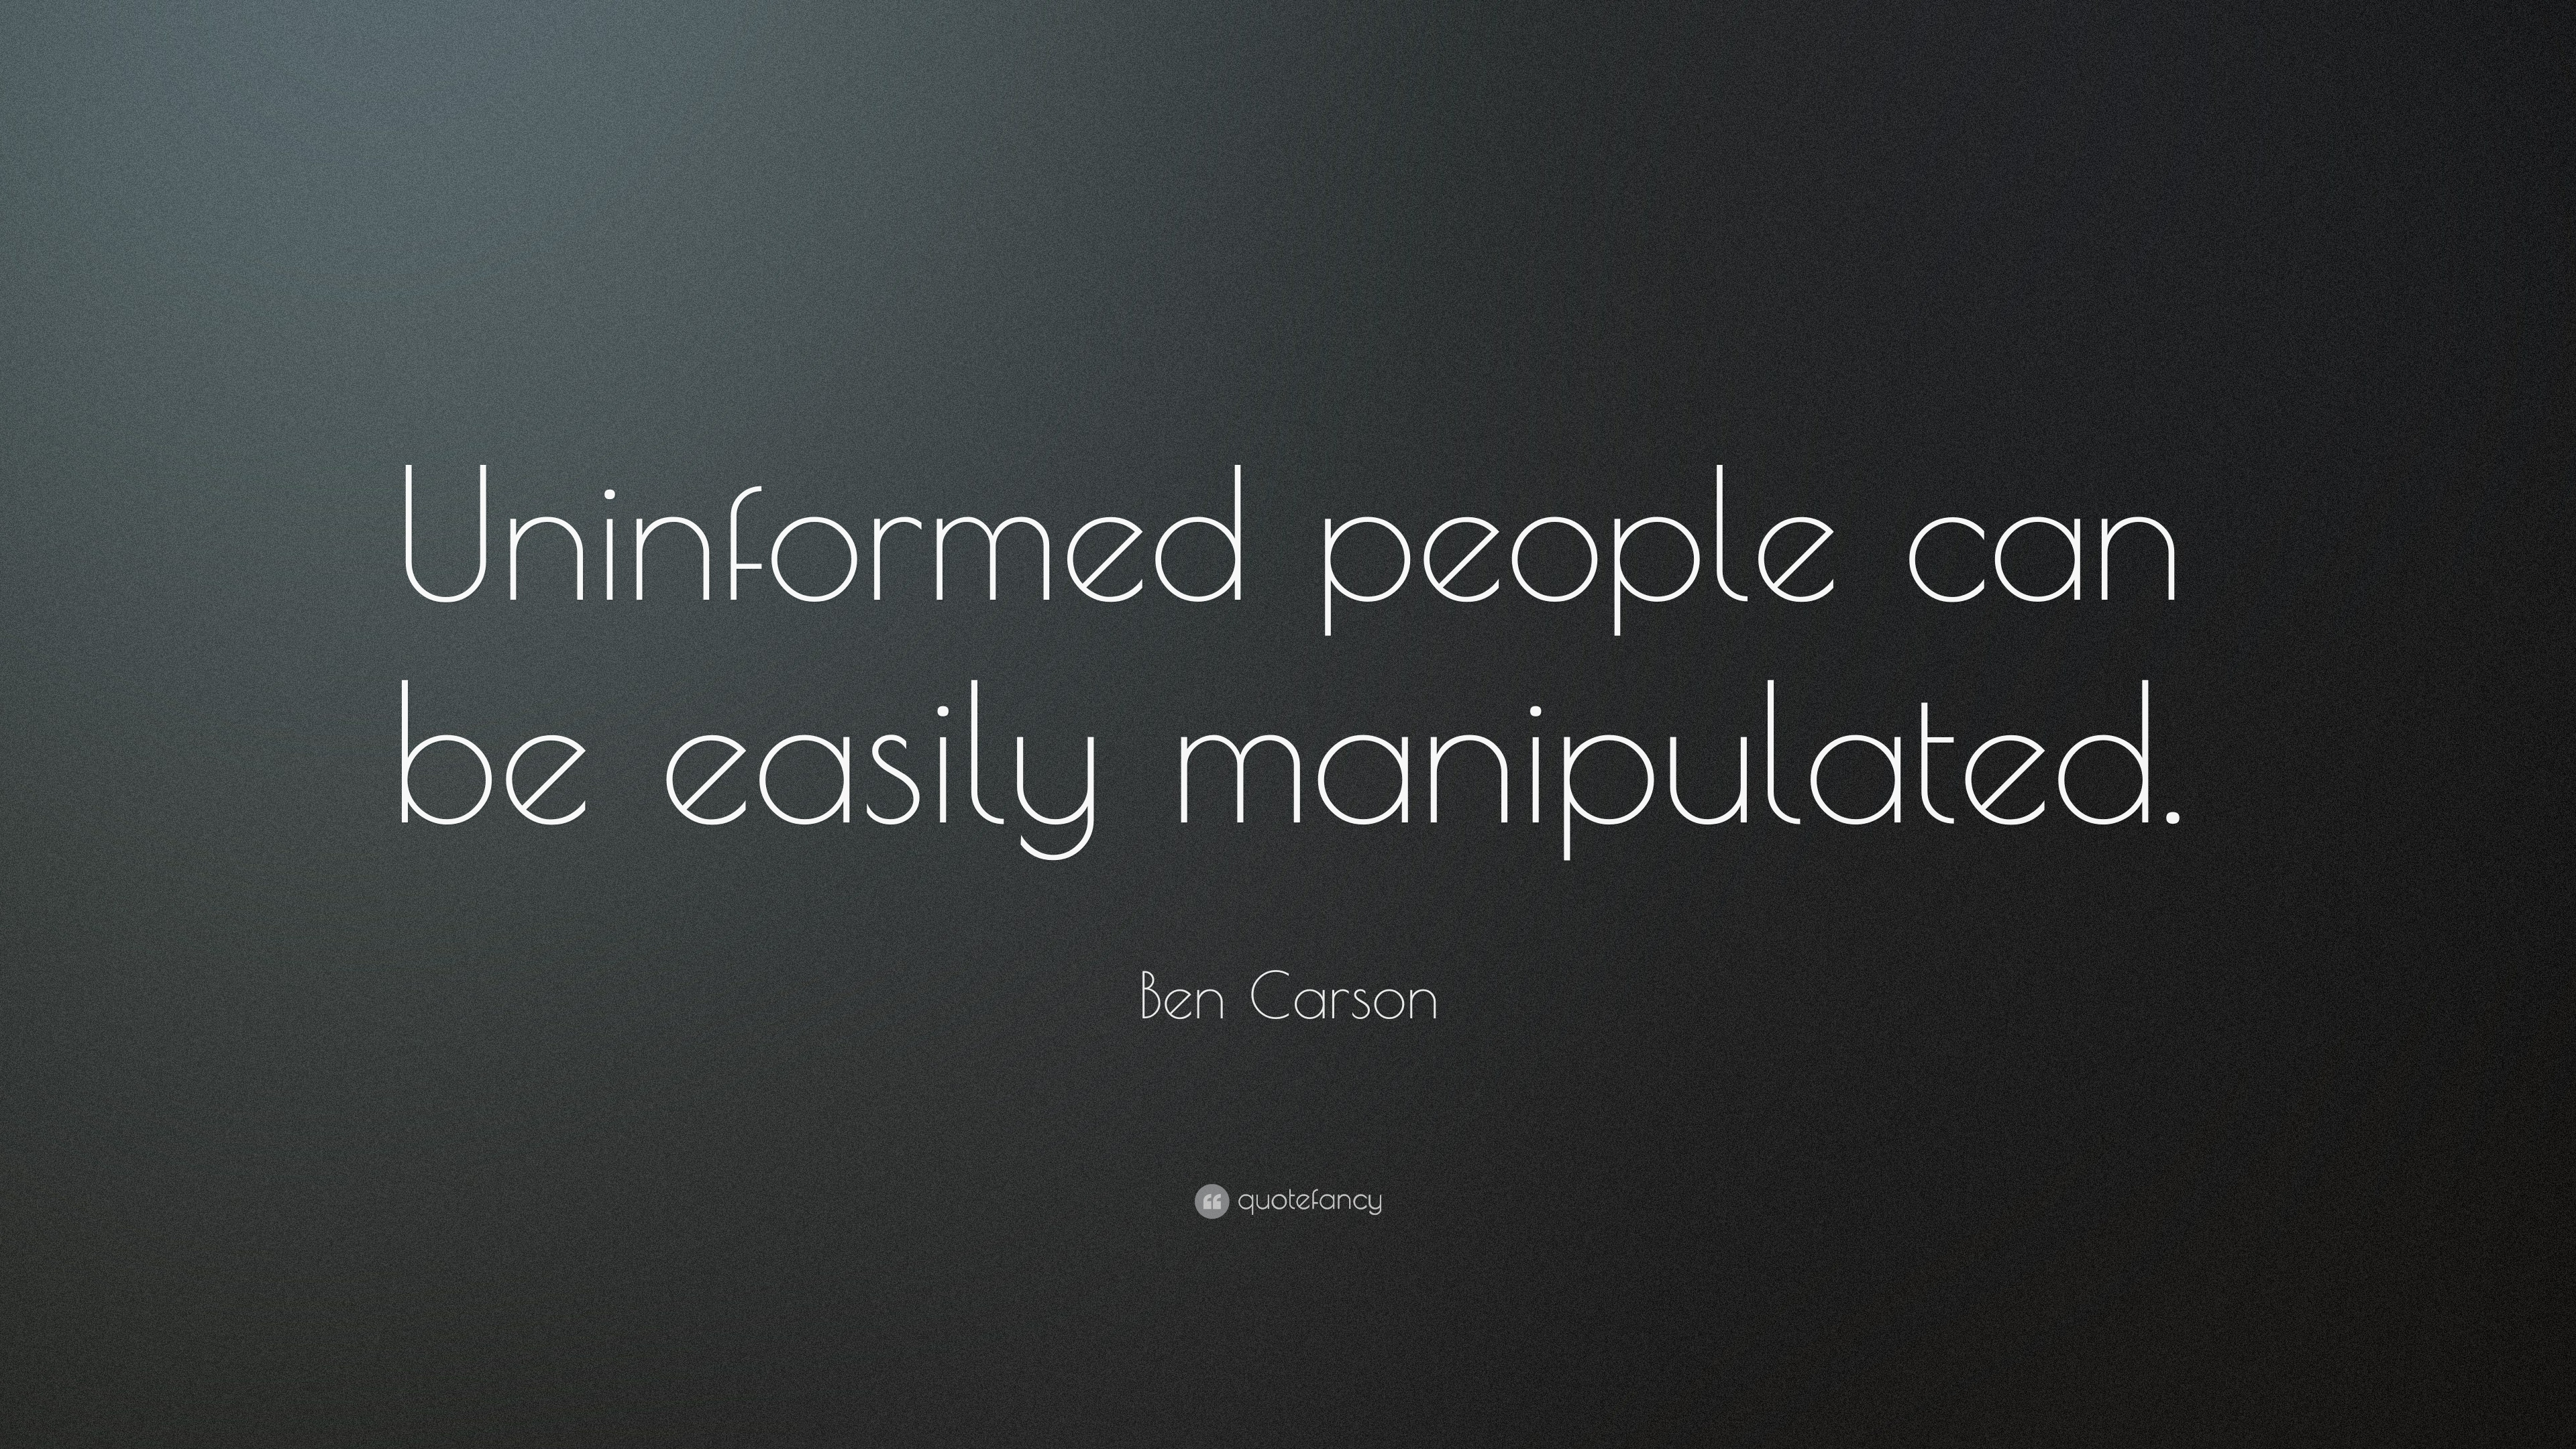 """Ben Carson Quote: """"Uninformed people can be easily manipulated."""" (10  wallpapers) - Quotefancy"""